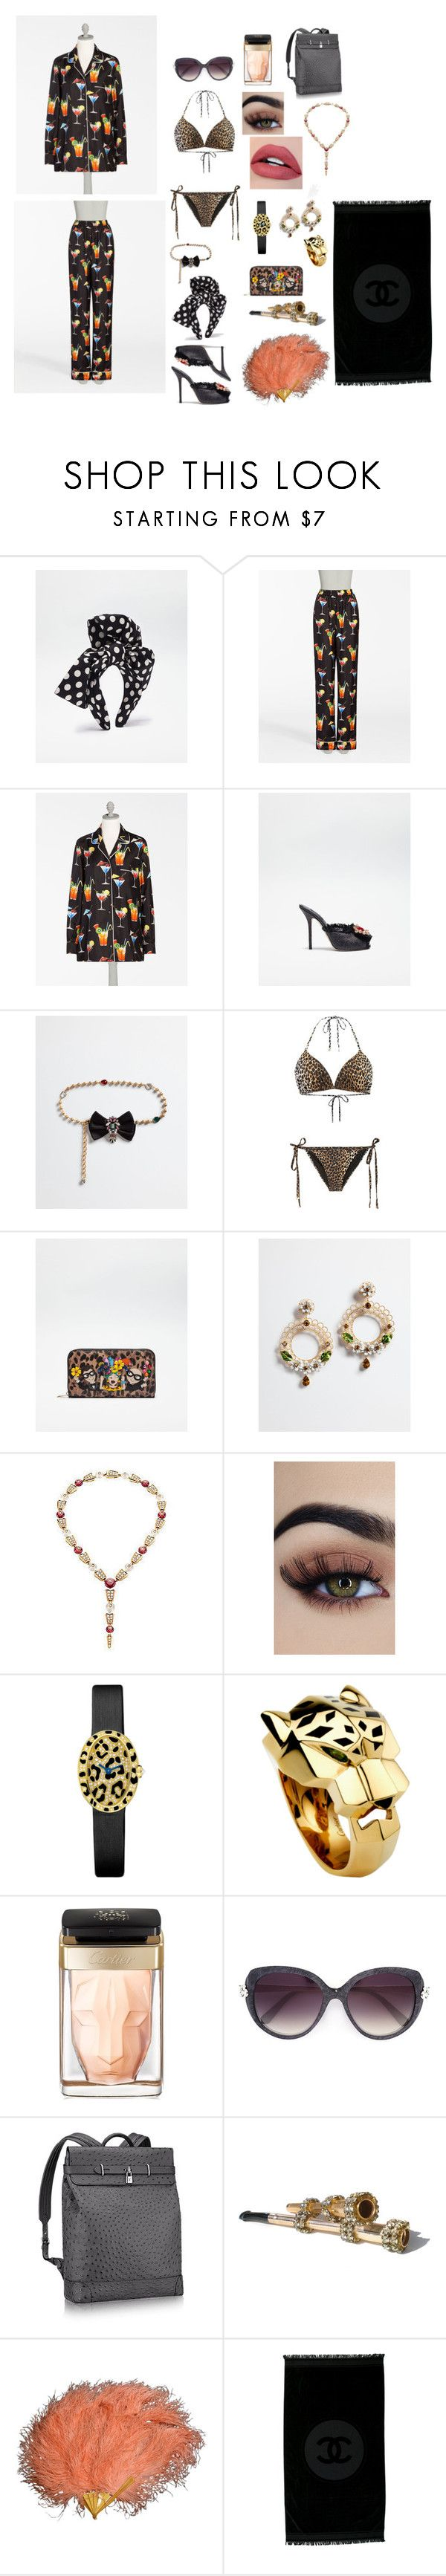 """Maldives"" by naomi-nannis on Polyvore featuring moda, Dolce&Gabbana, Bulgari, Cartier y Chanel"